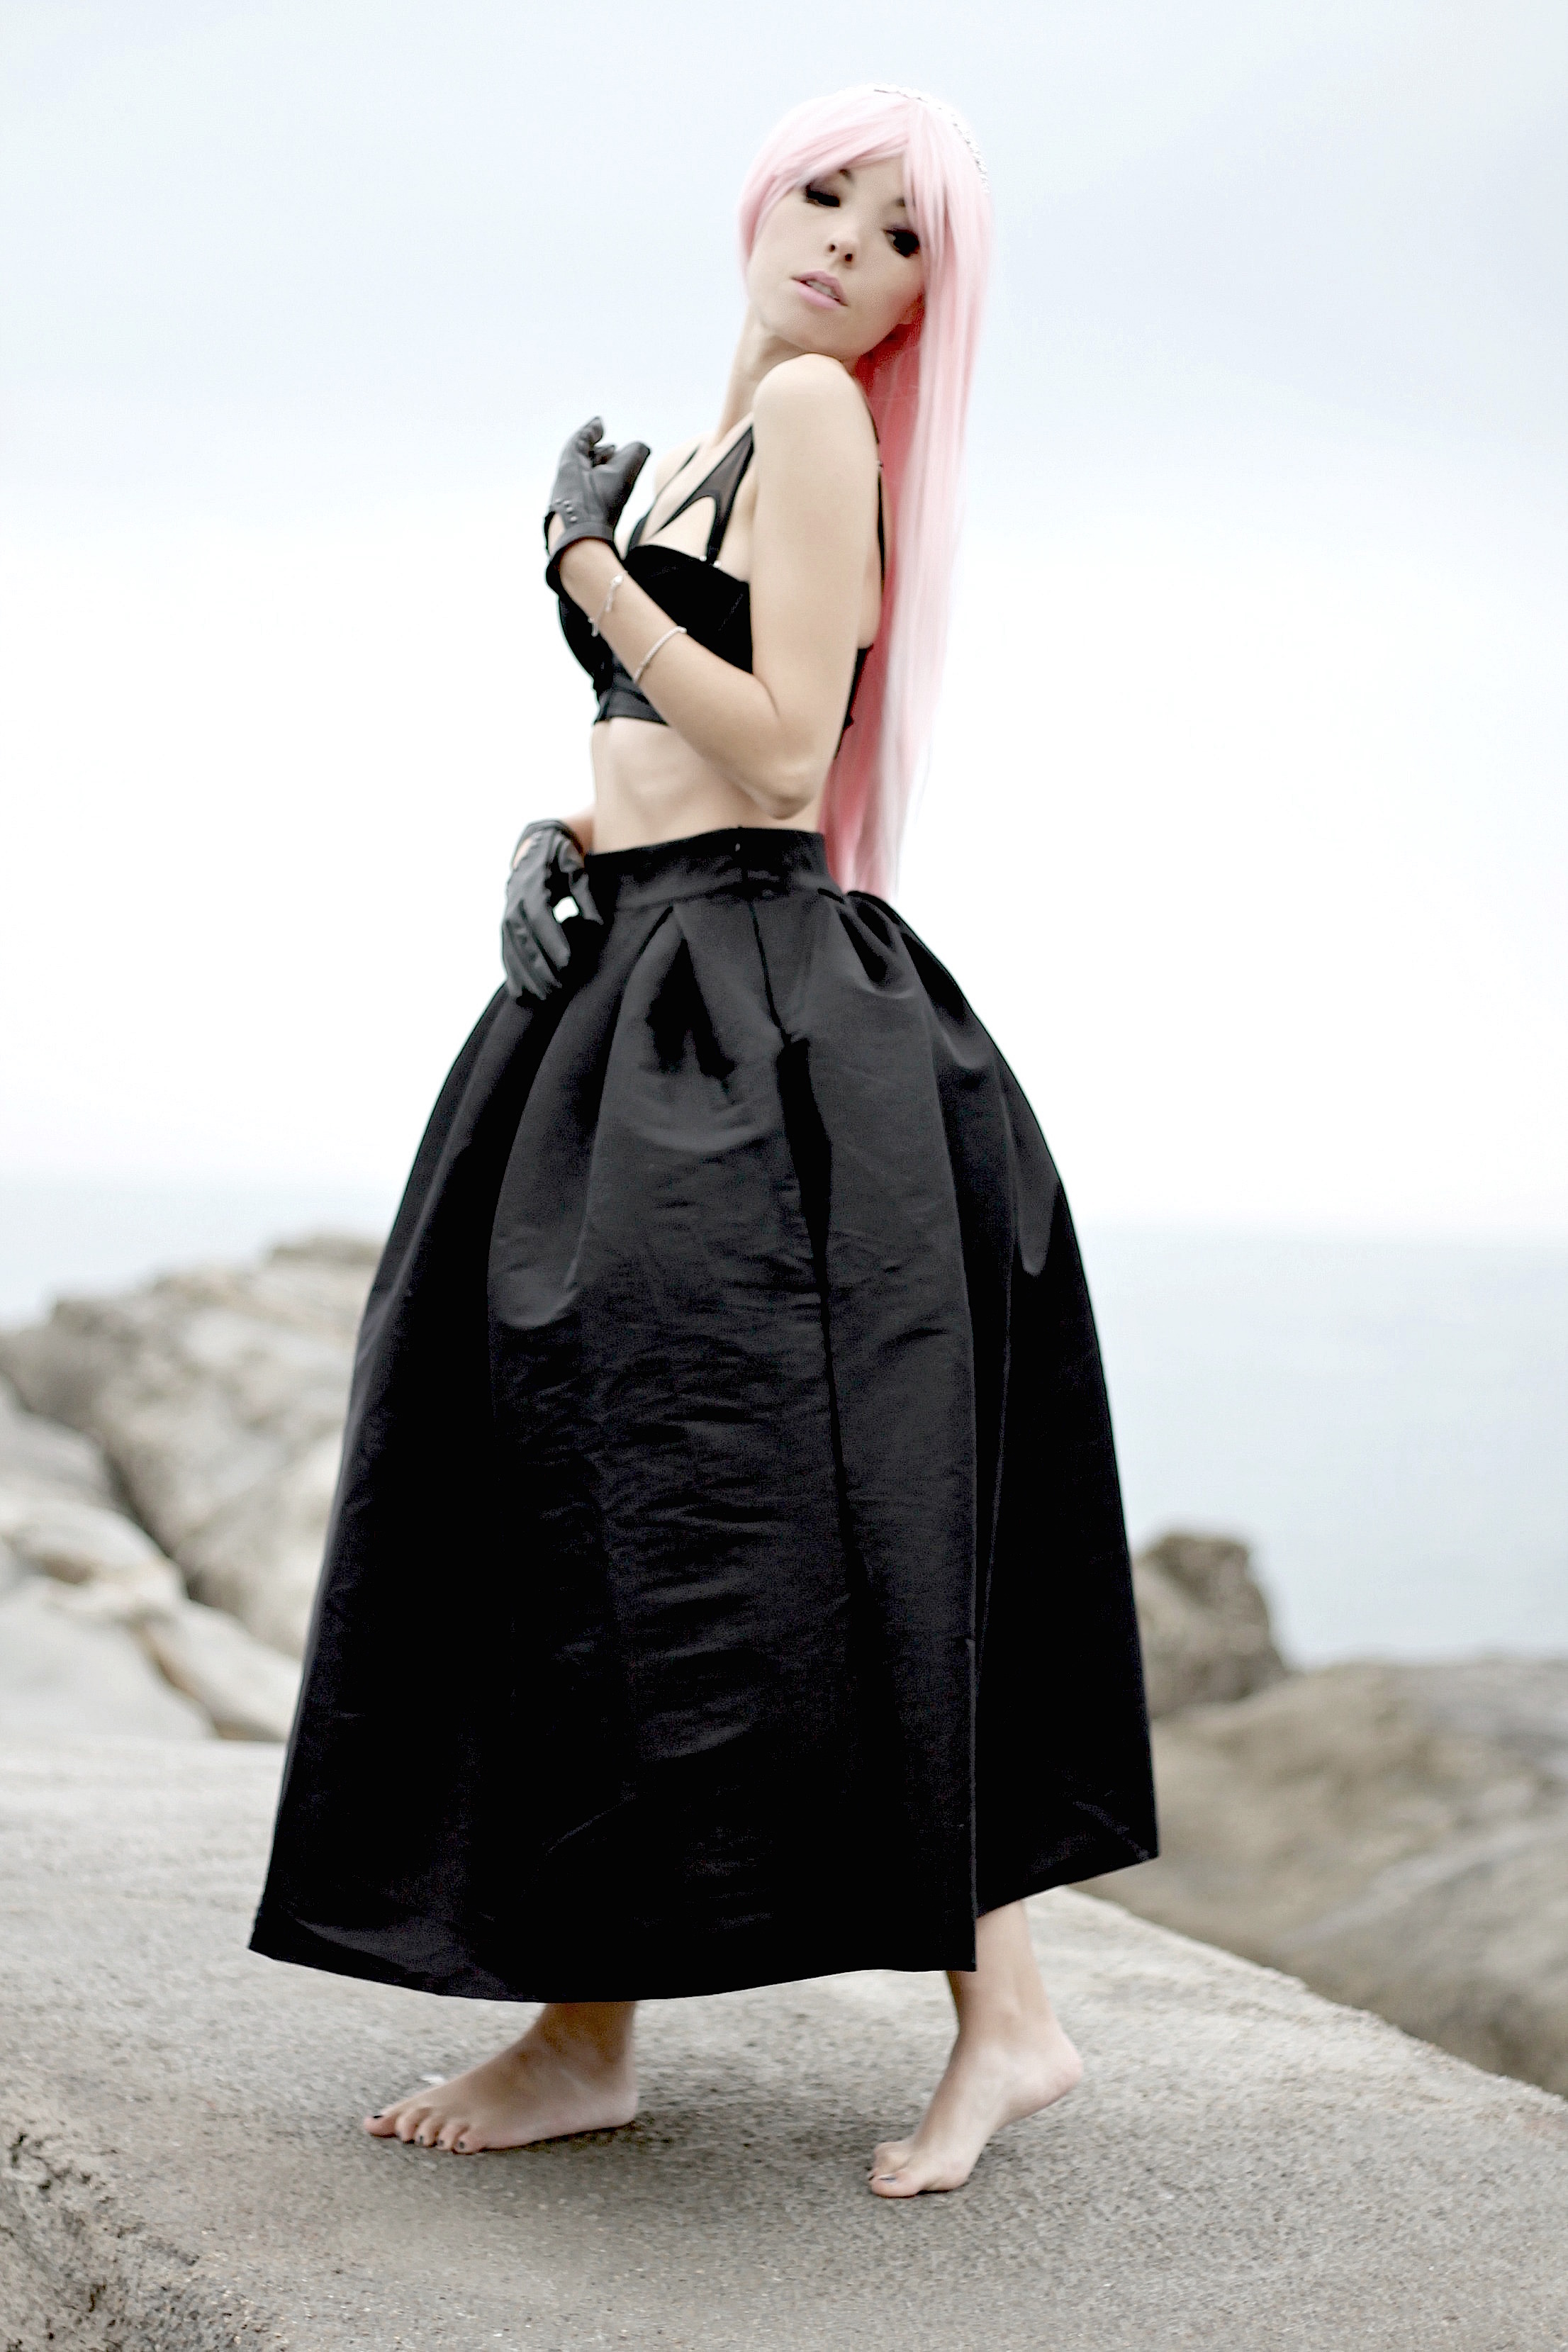 Errori di marketing, theladycracy.it, elisa bellino, black long skirt, rock outfit, manga make up, pink hair look, louis vuitton manga look, manga outfit, fashion blogger italiane famose, fashion blog italia, best fashion blogger outfit, best fashion blog, fashion blogger look